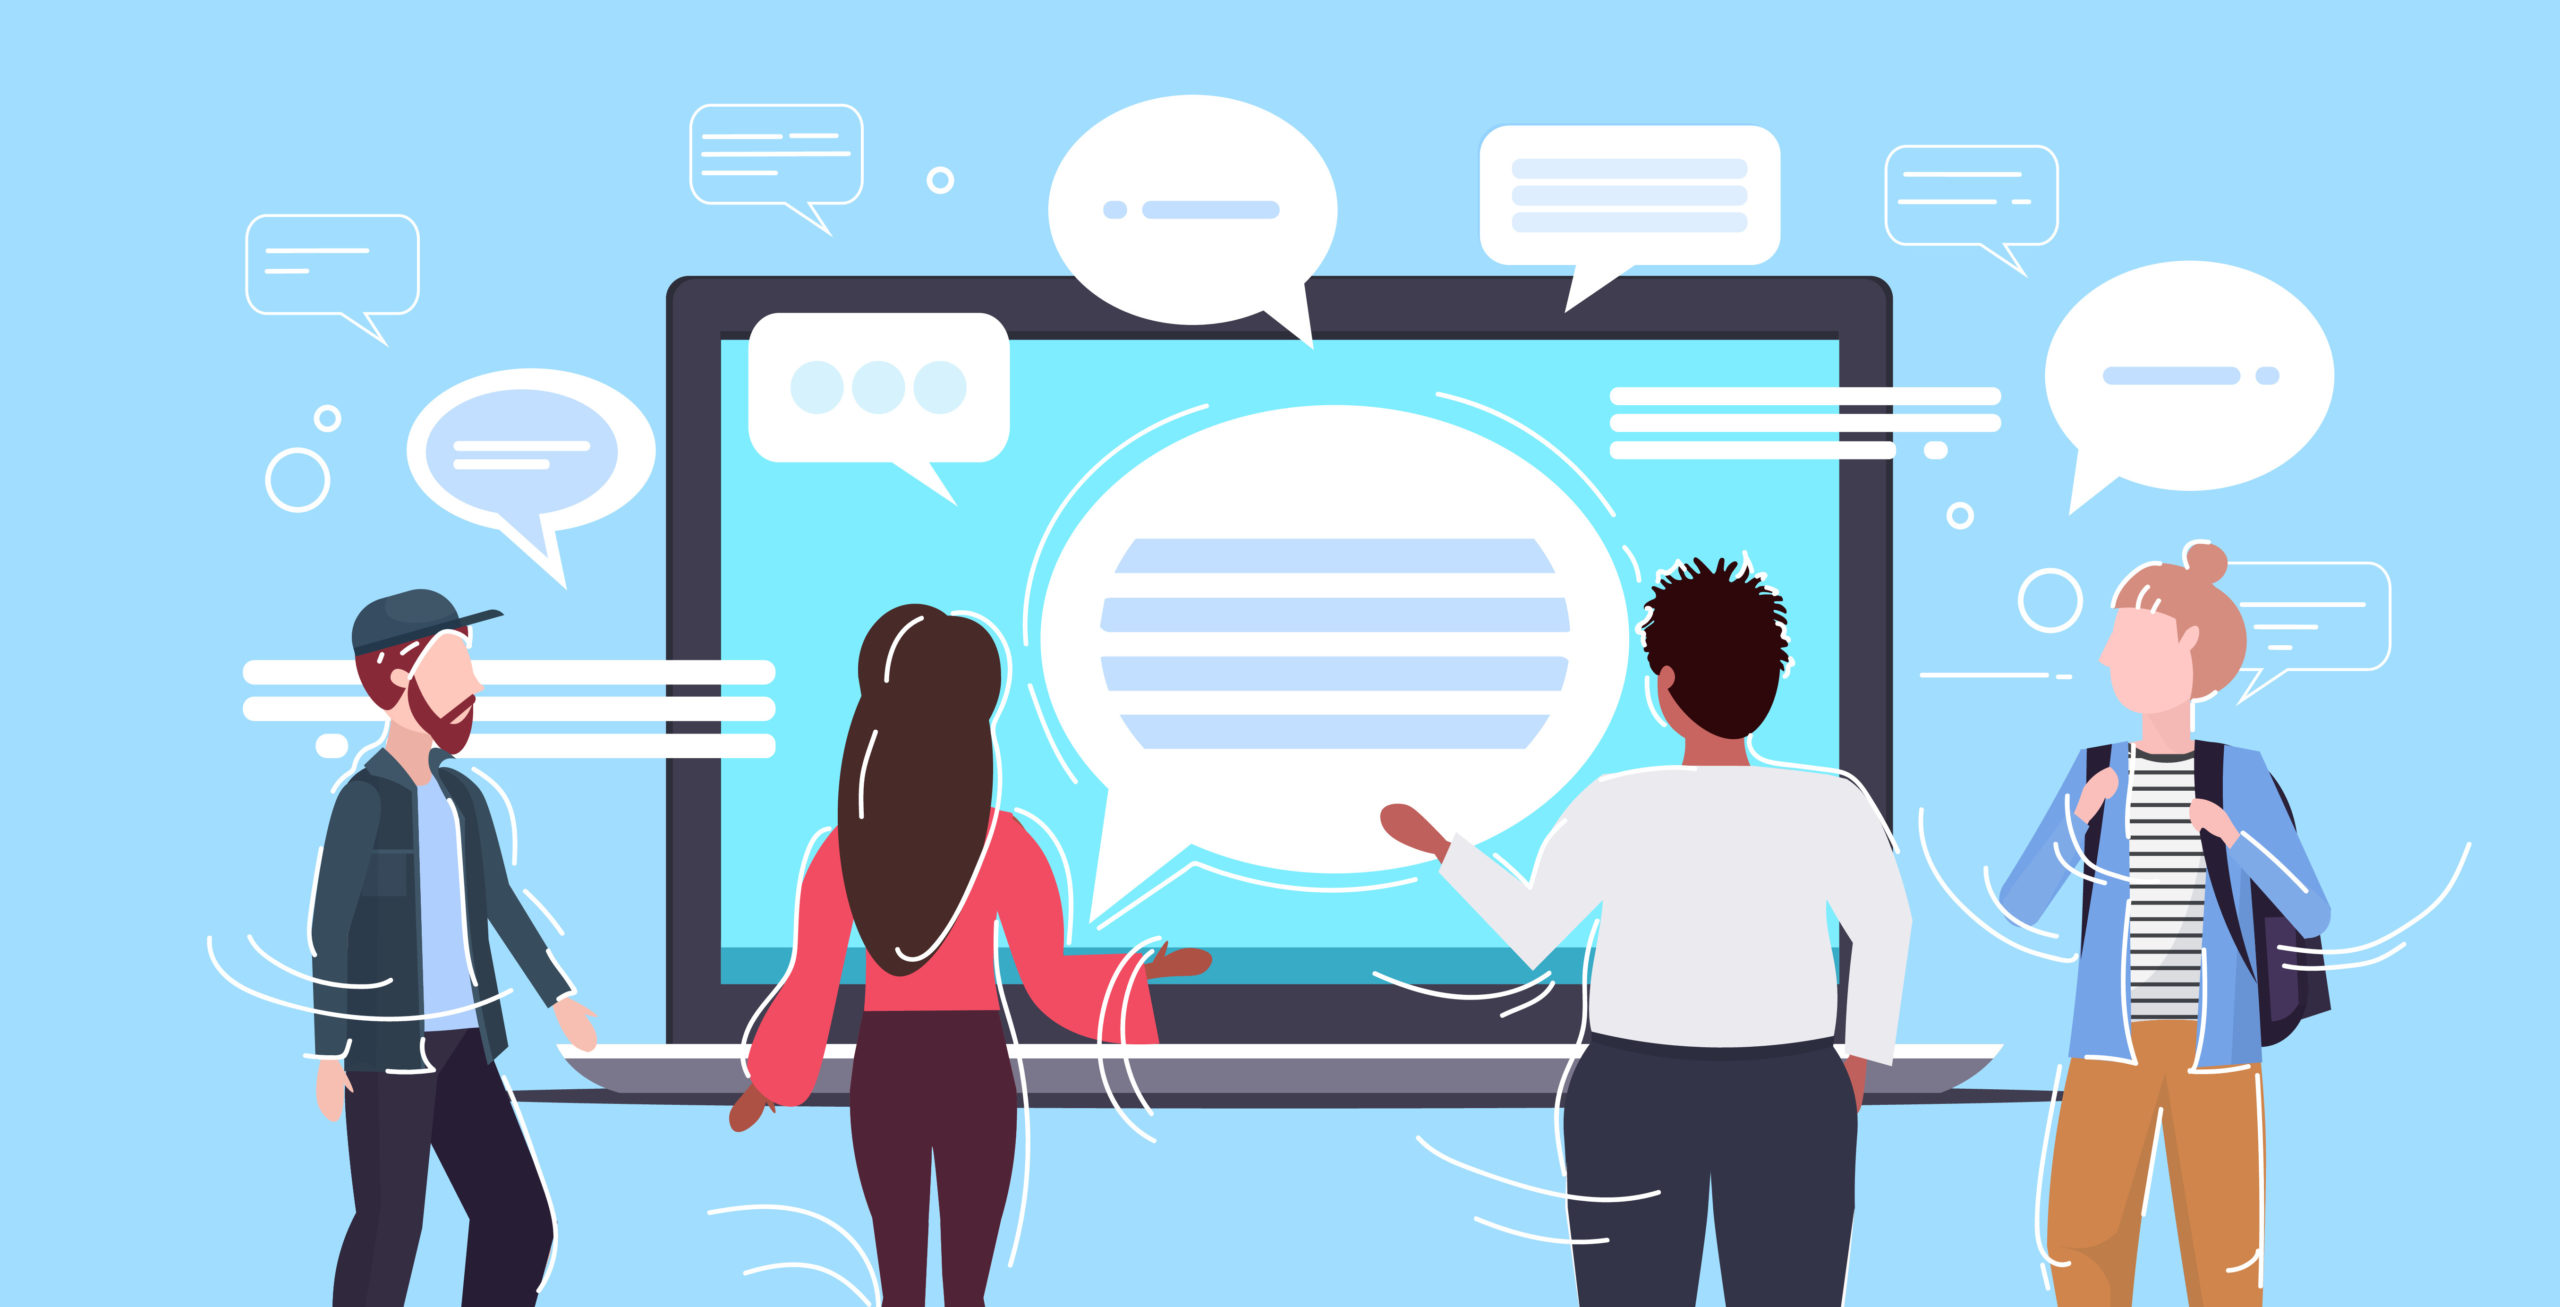 Finding a Digital Care Community